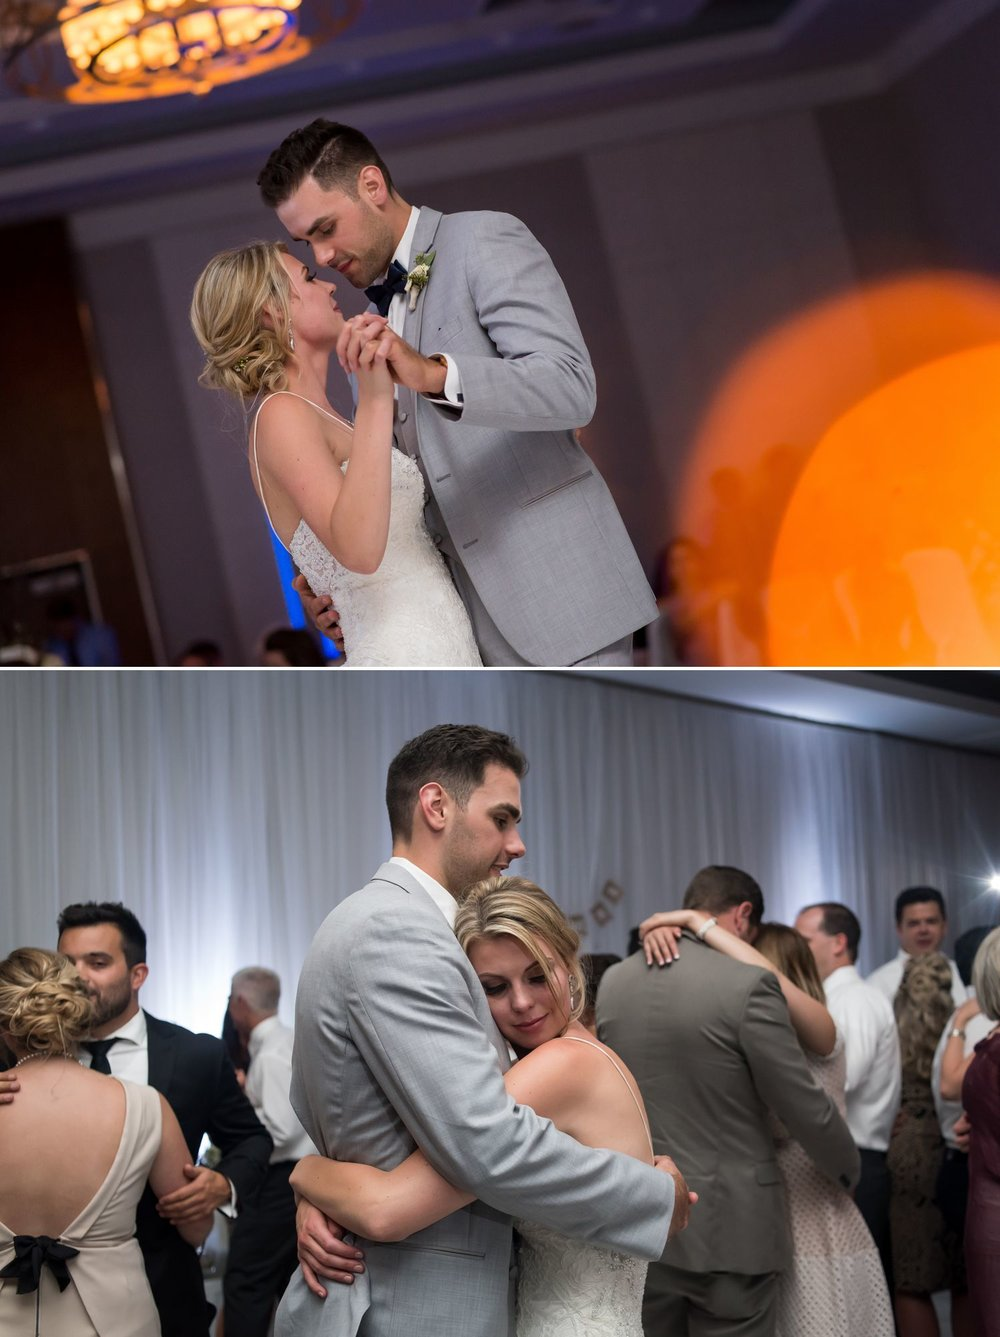 The bride and groom during their first dance at their wedding reception at The Delta Hotel in downtown Ottawa